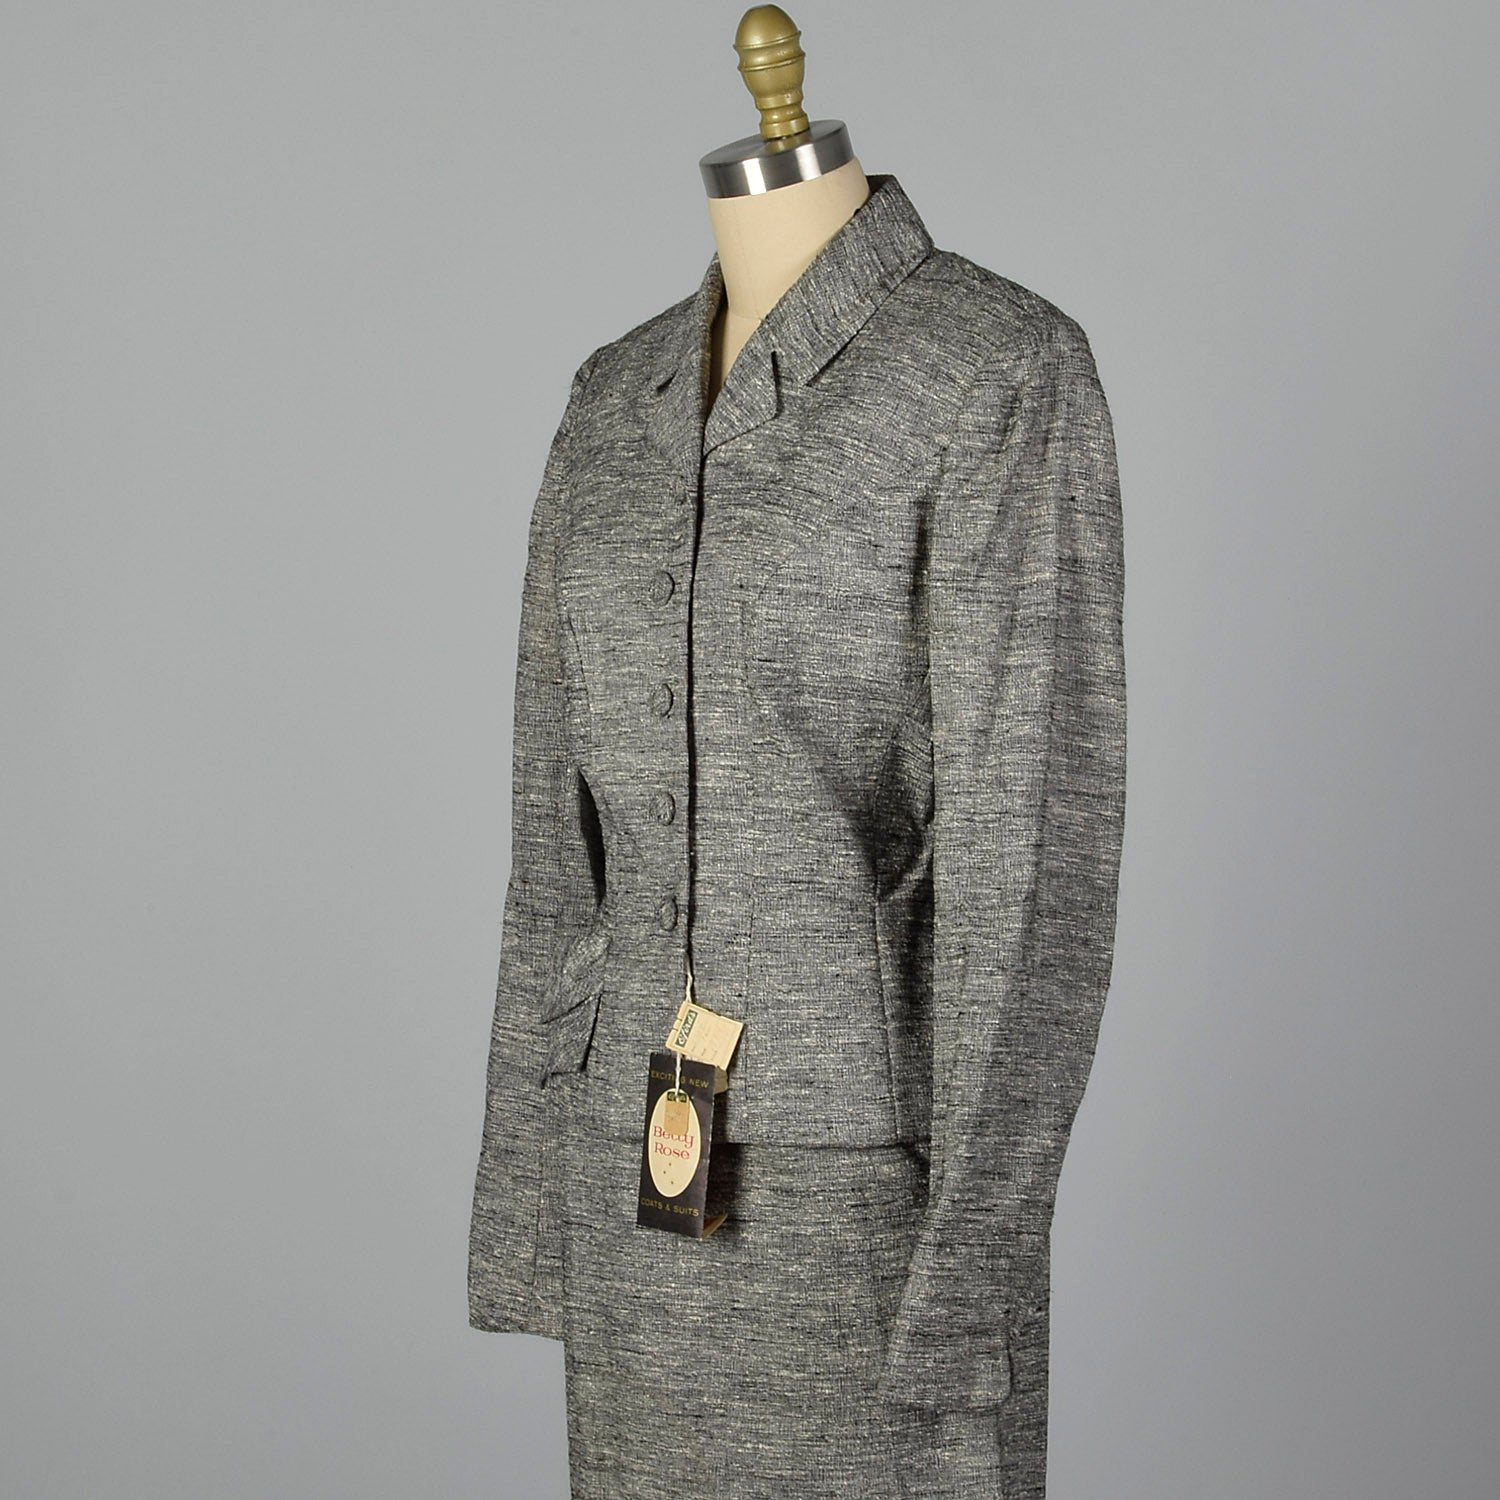 1950s Deadstock Atomic Fleck Gray Skirt Suit